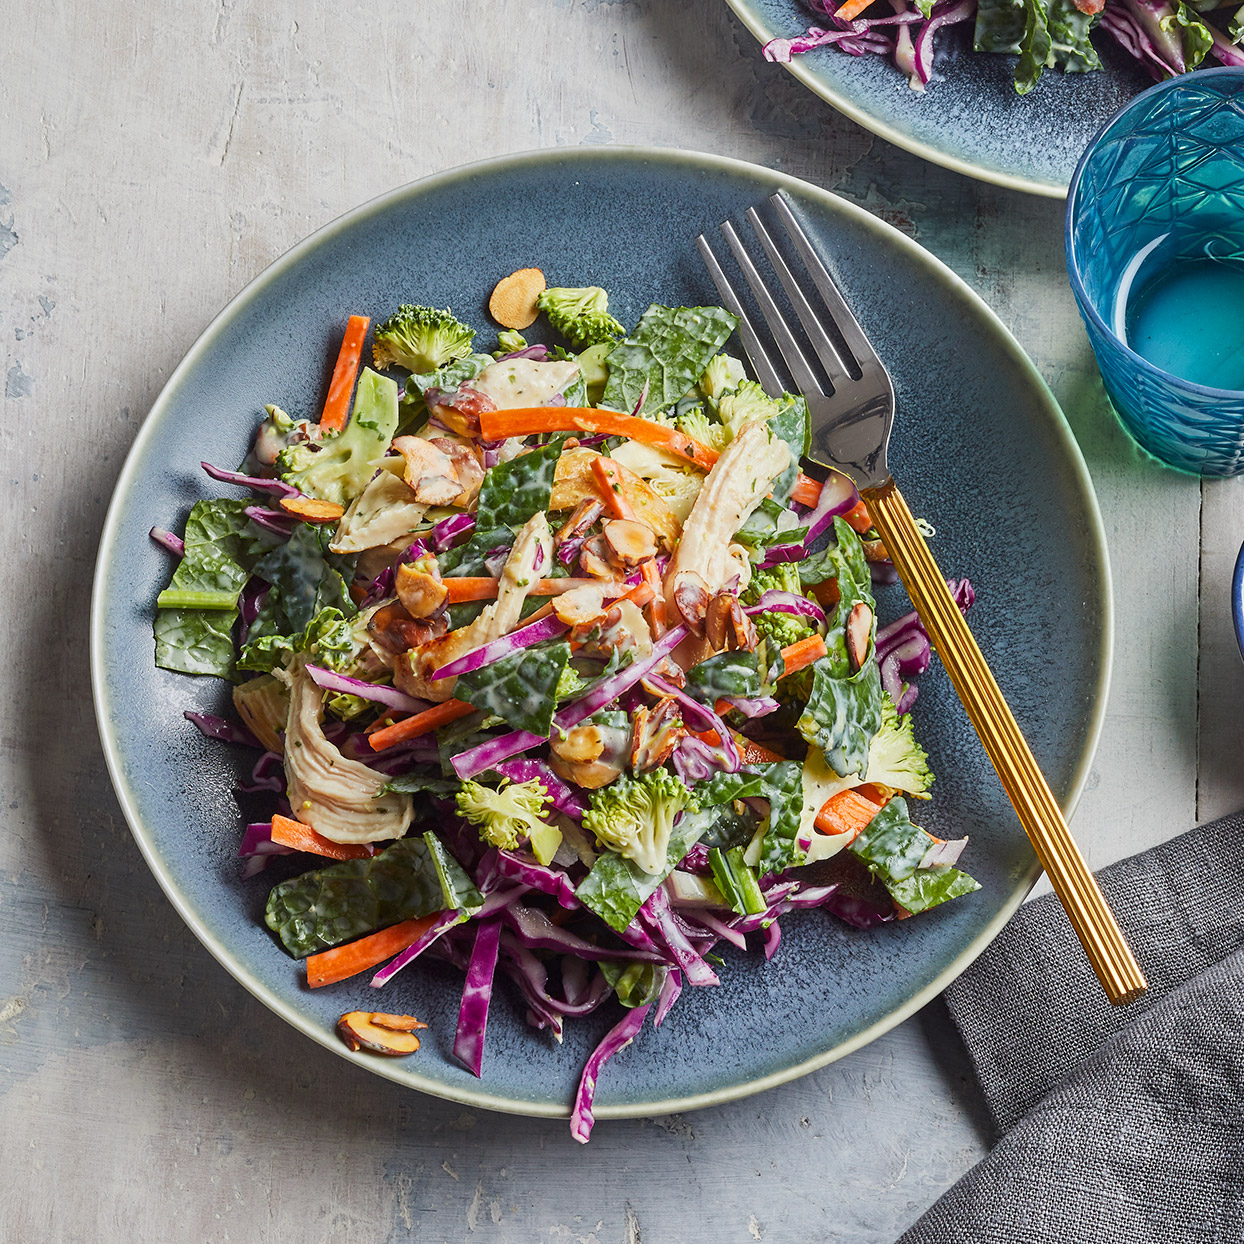 This herb-loaded green goddess-inspired dressing gets a color boost from creamy avocado. Make a double batch of this healthy salad dressing to keep on hand for salads throughout the week. Source: EatingWell Magazine, March 2020